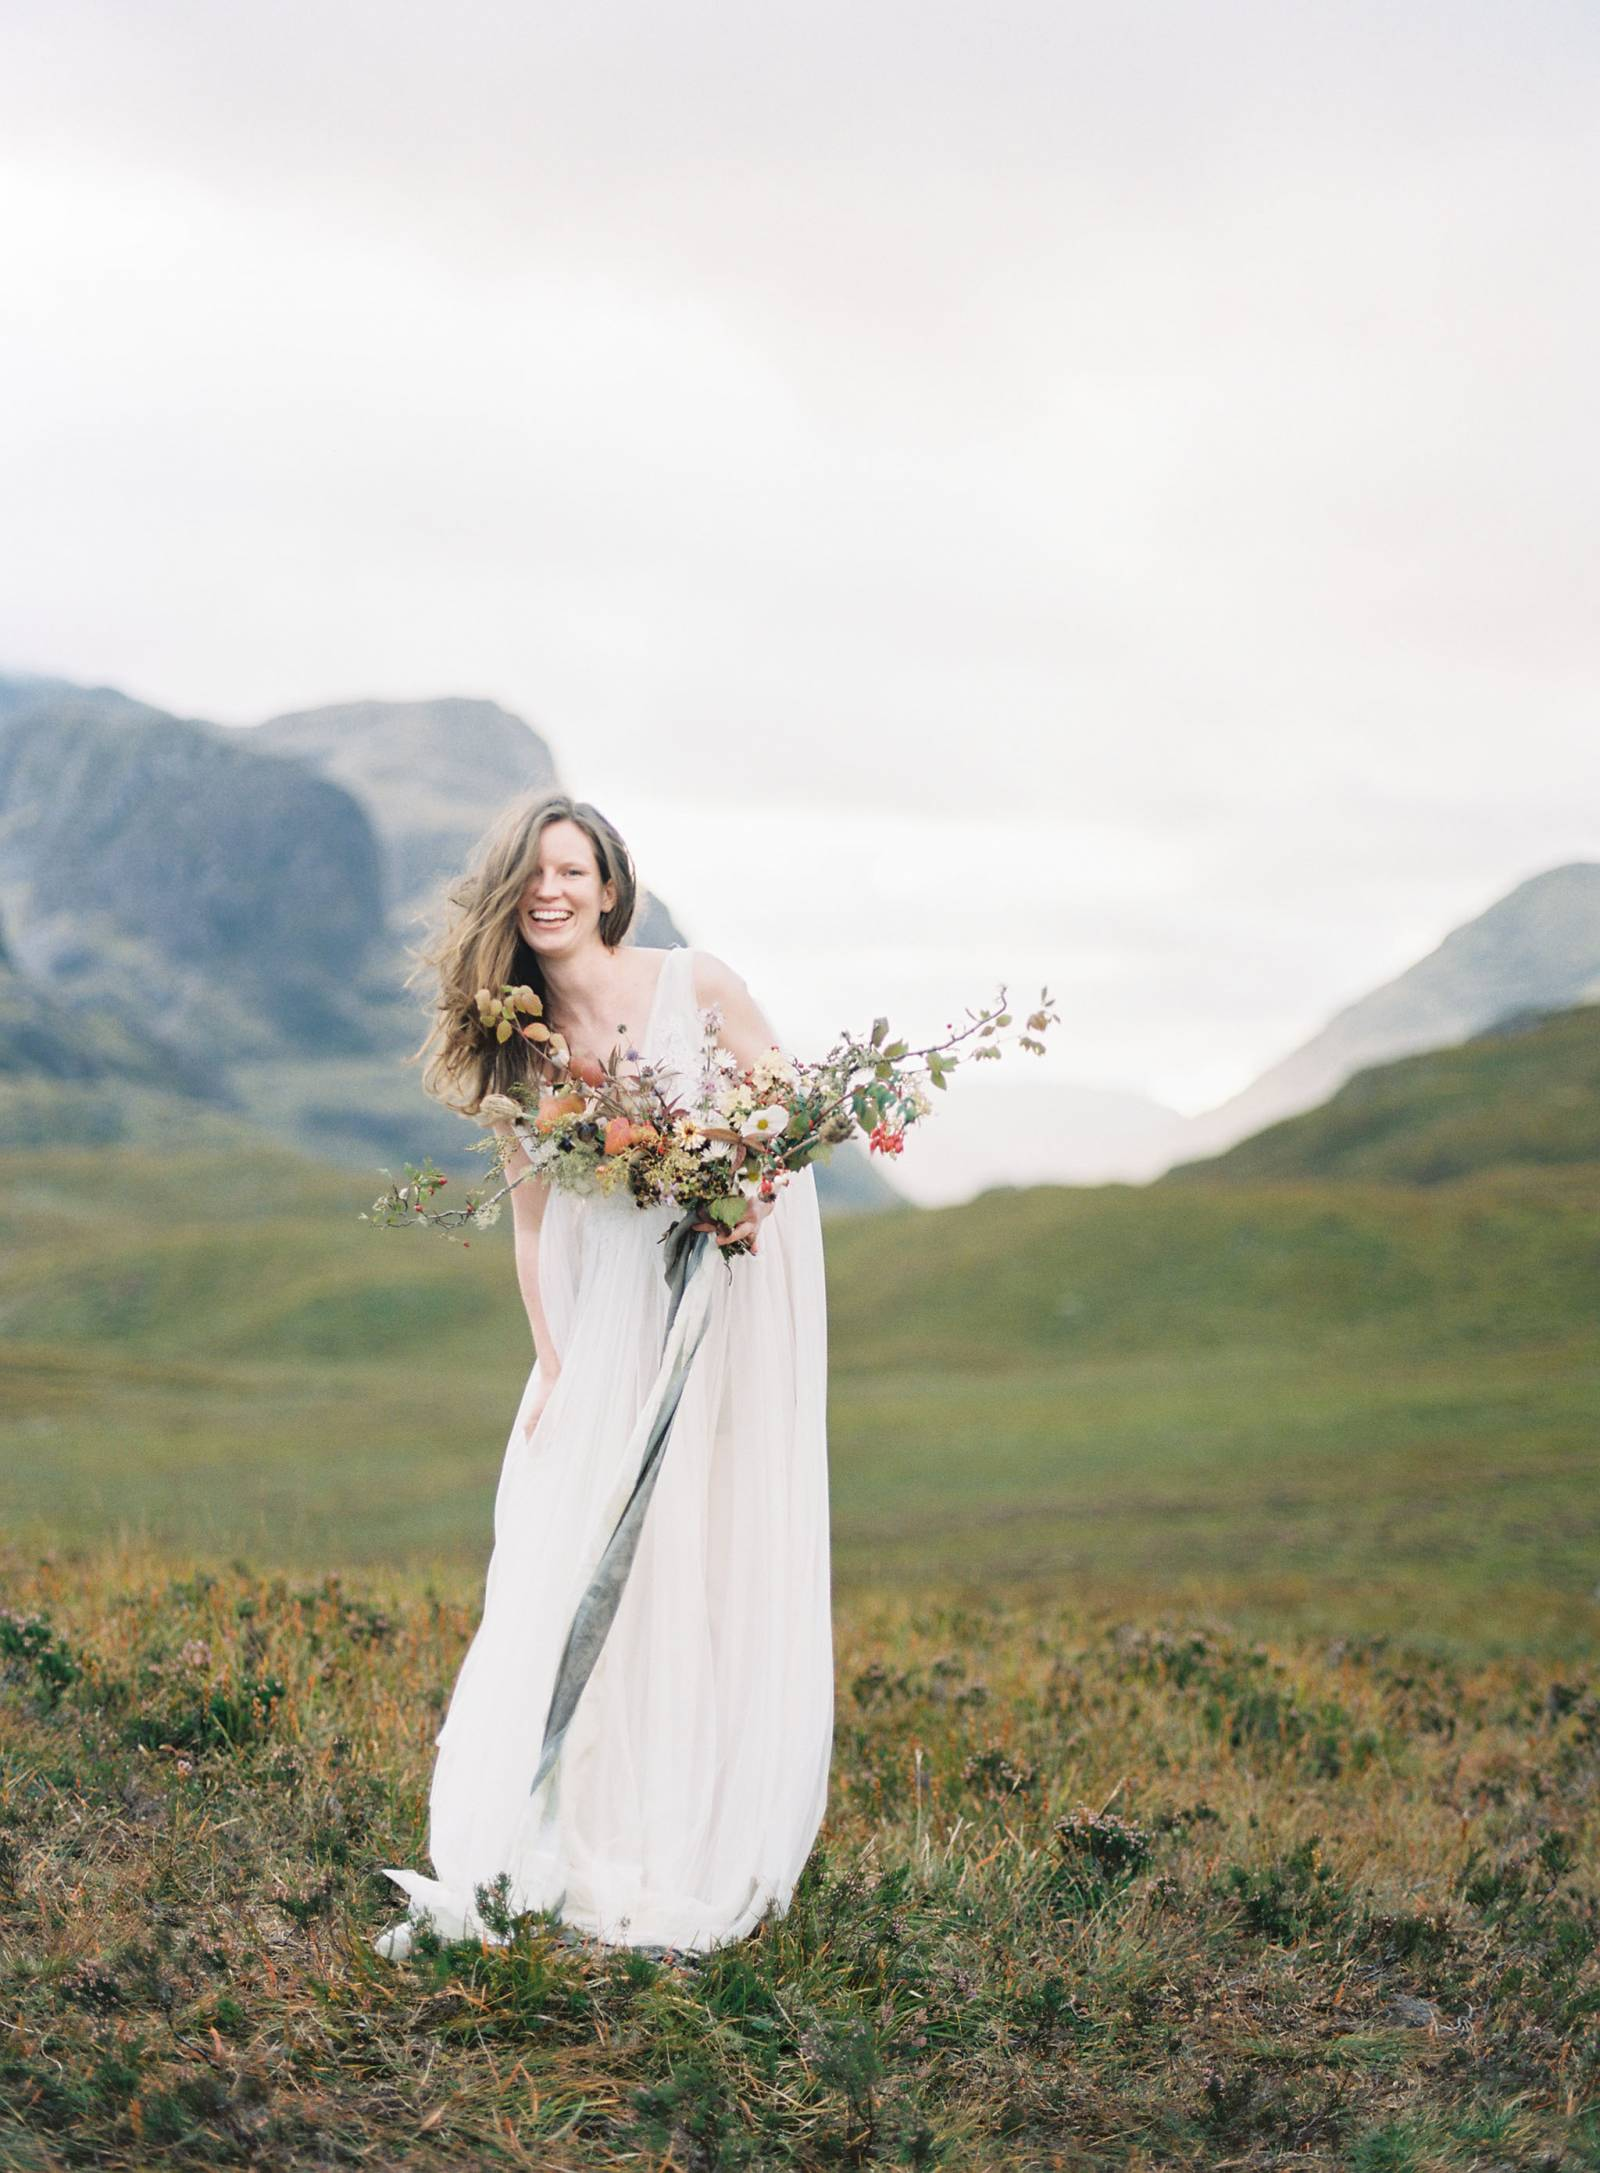 Minimalist Yet Wild Bridal Shoot In The Scottish Highlands